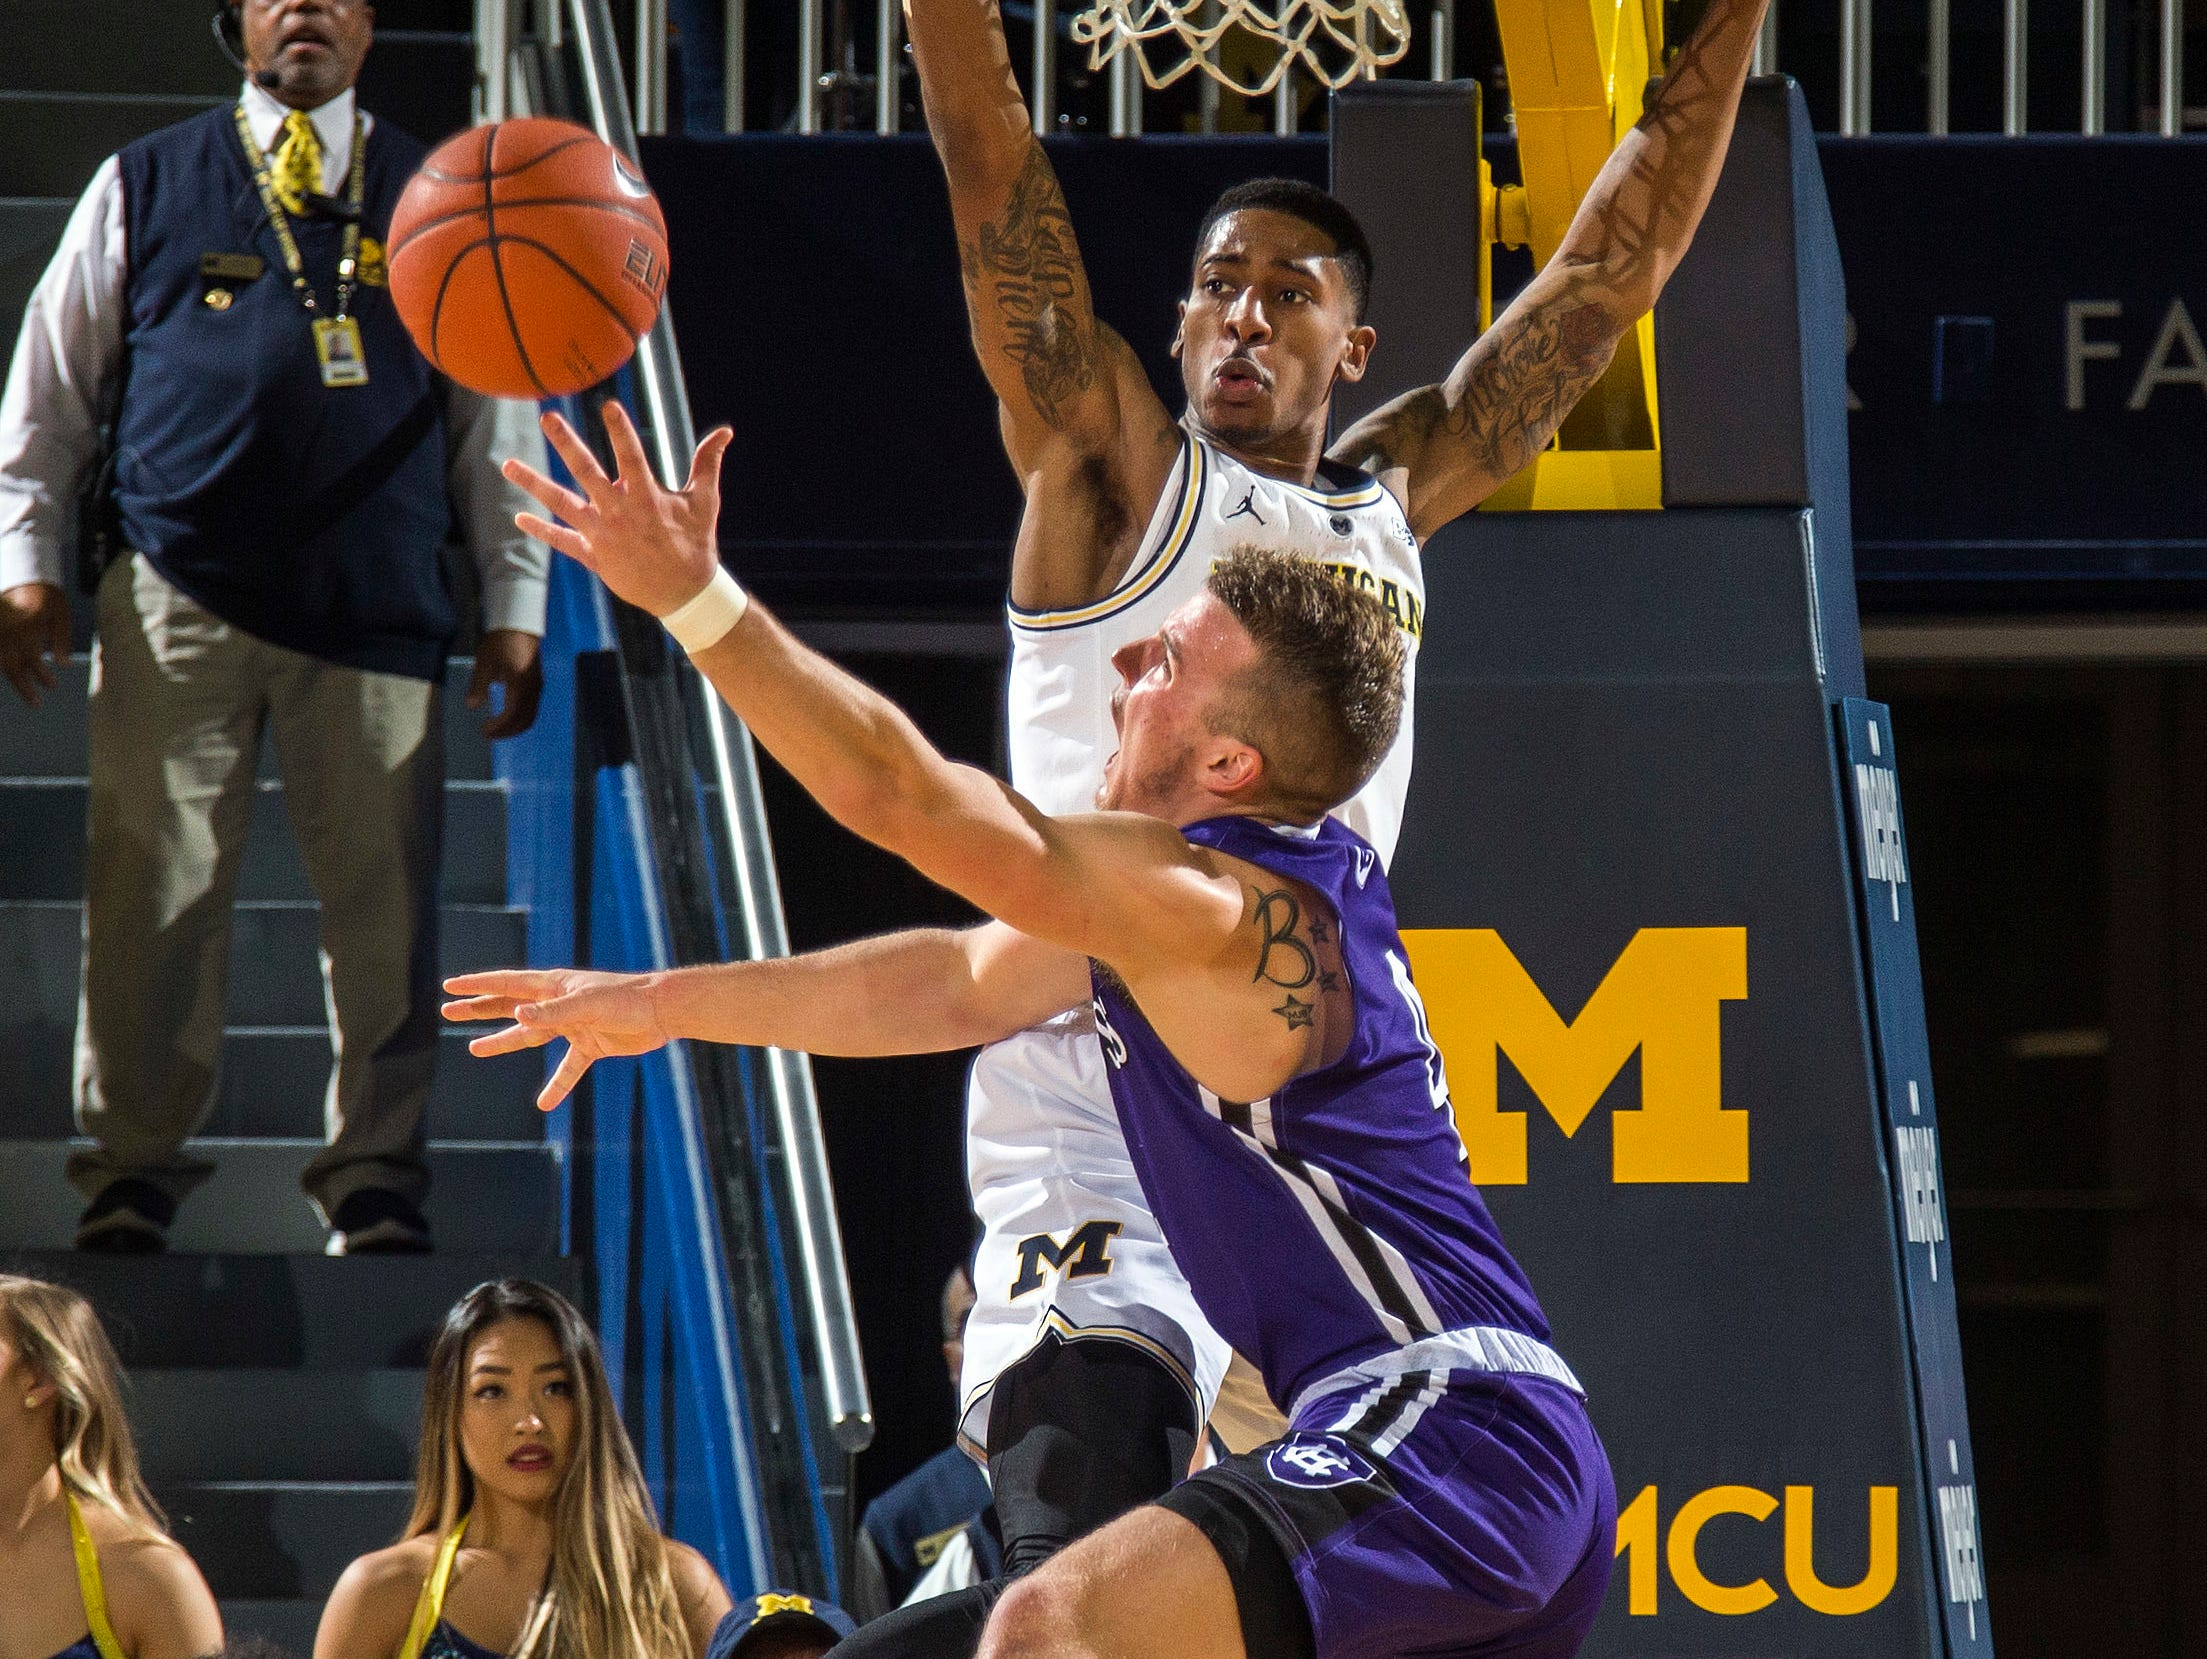 Holy Cross guard Austin Butler, front, attempts to make a basket while defended by Michigan guard Charles Matthews, back, in the second half of an NCAA college basketball game at Crisler Center in Ann Arbor, Mich., Saturday, Nov. 10, 2018. (AP Photo/Tony Ding)